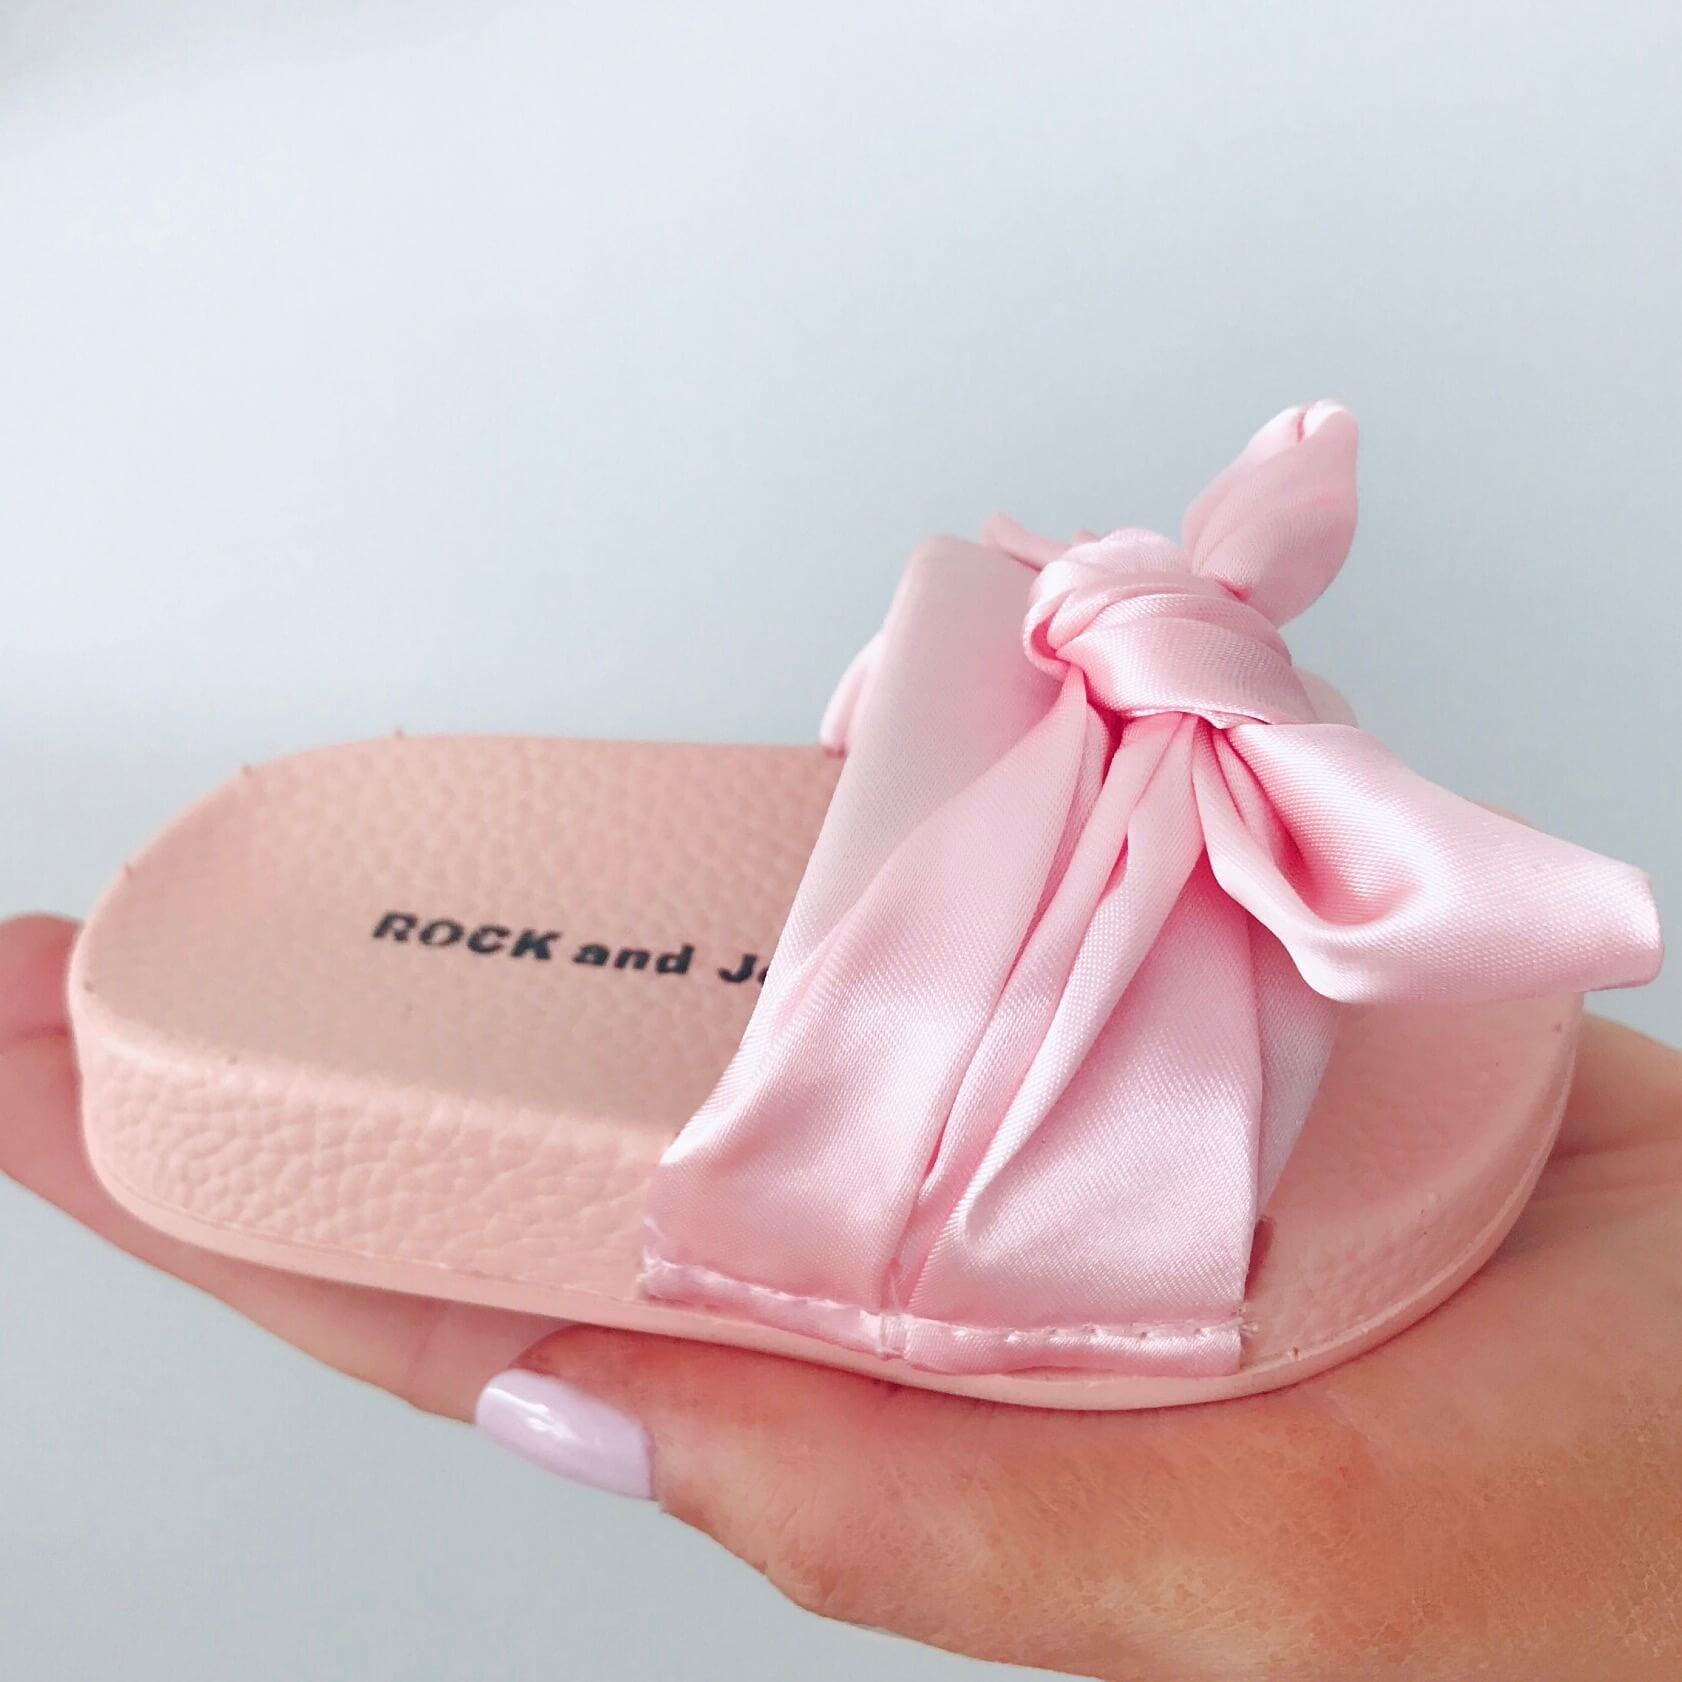 Itty Bitty Pink Satin Bow Sliders - Baby Boutique Shop